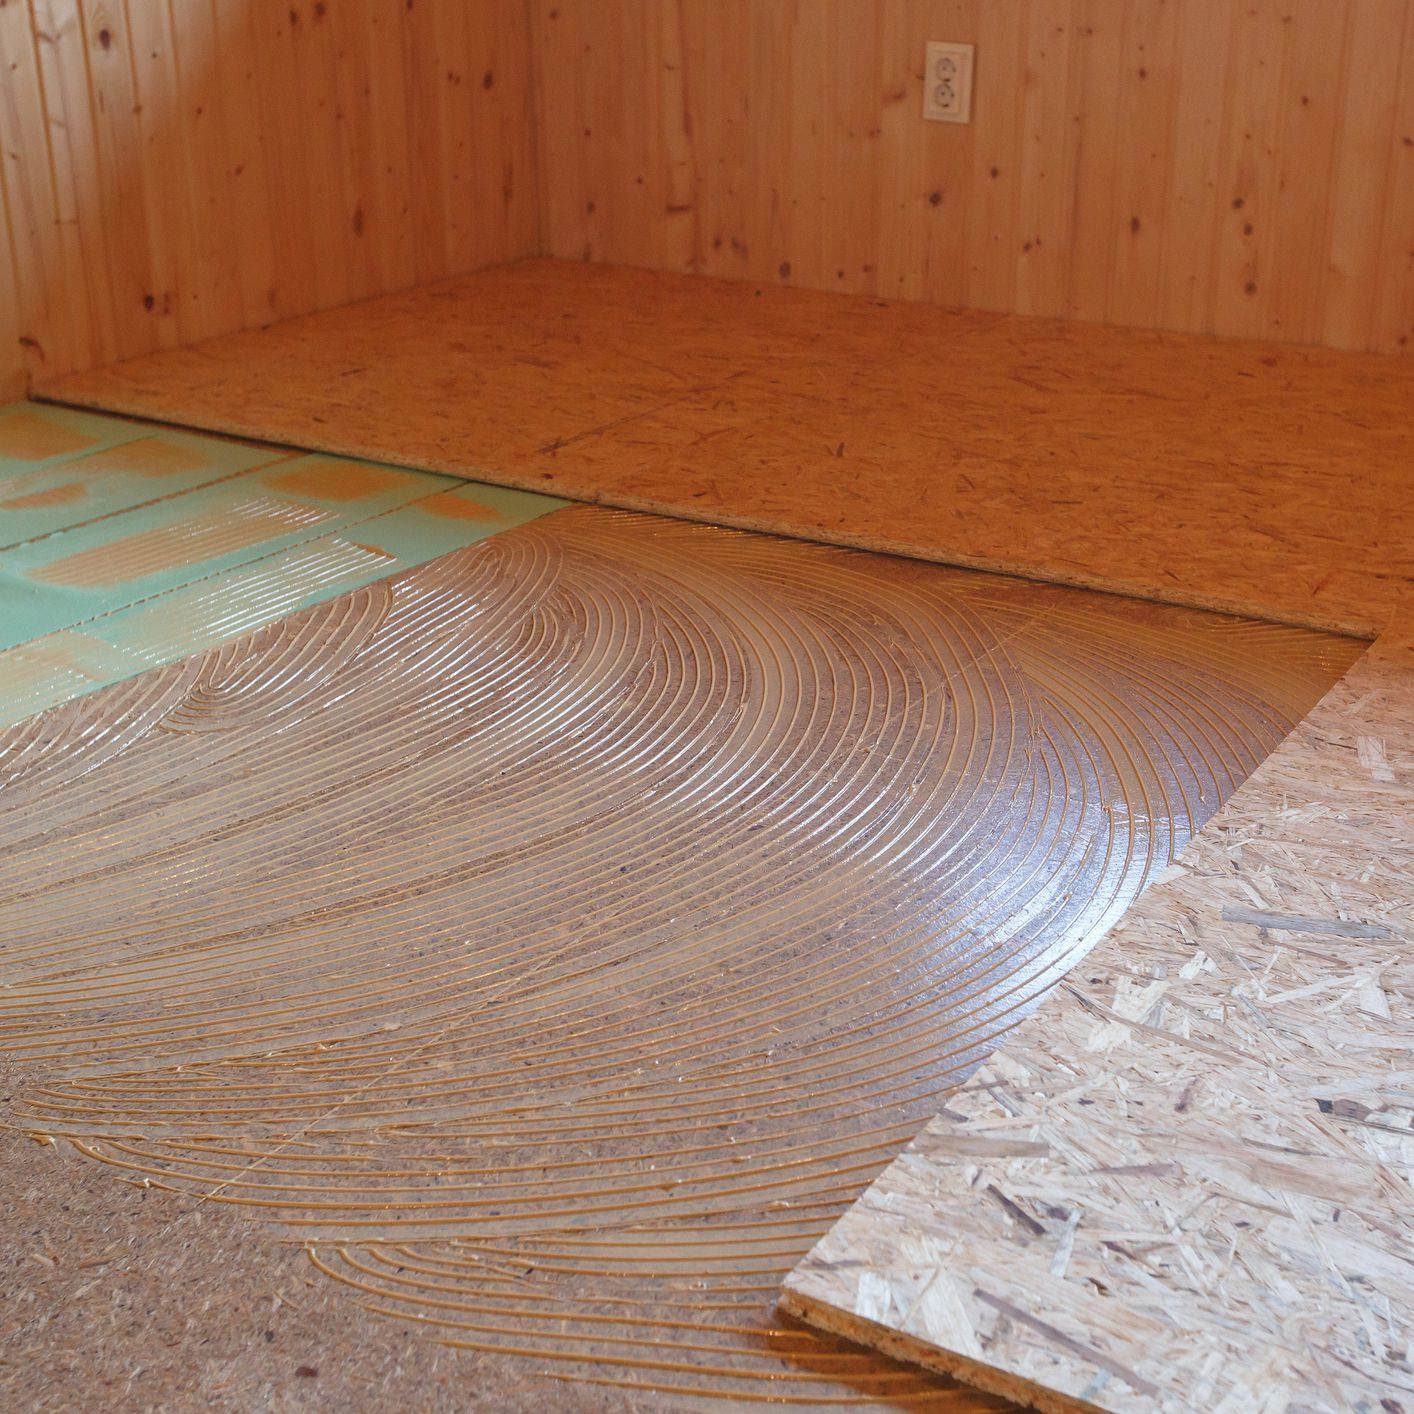 Subfloor Materials In Construction